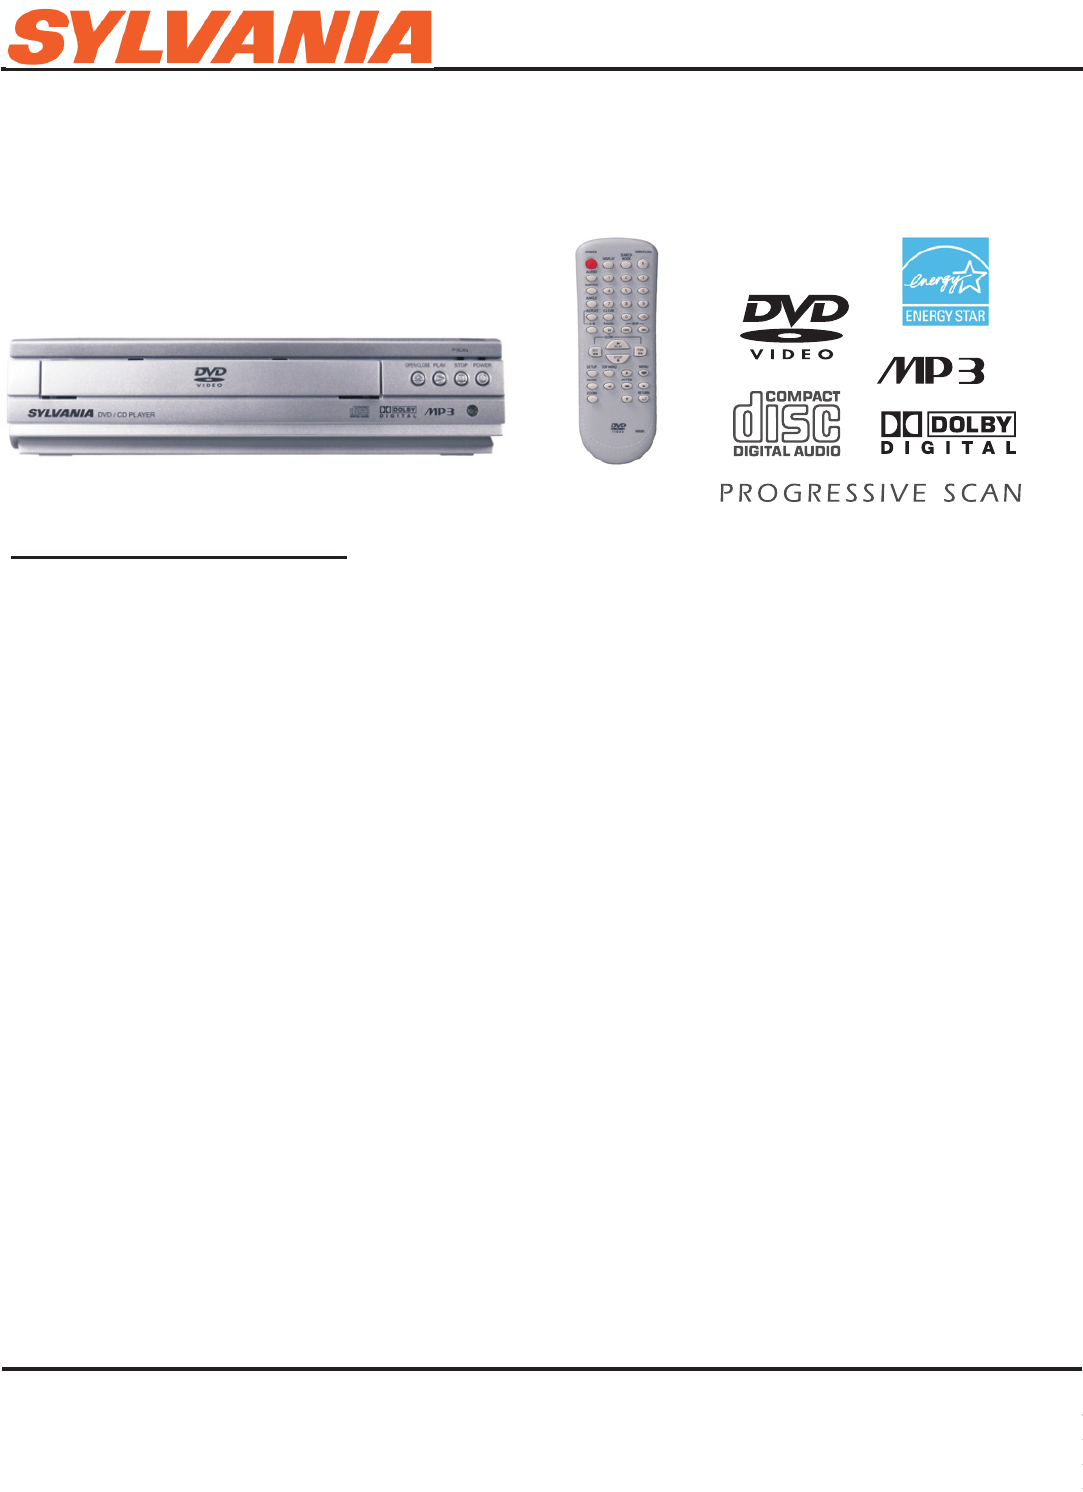 Sylvania Dvd Player Dp100sl8 User Guide